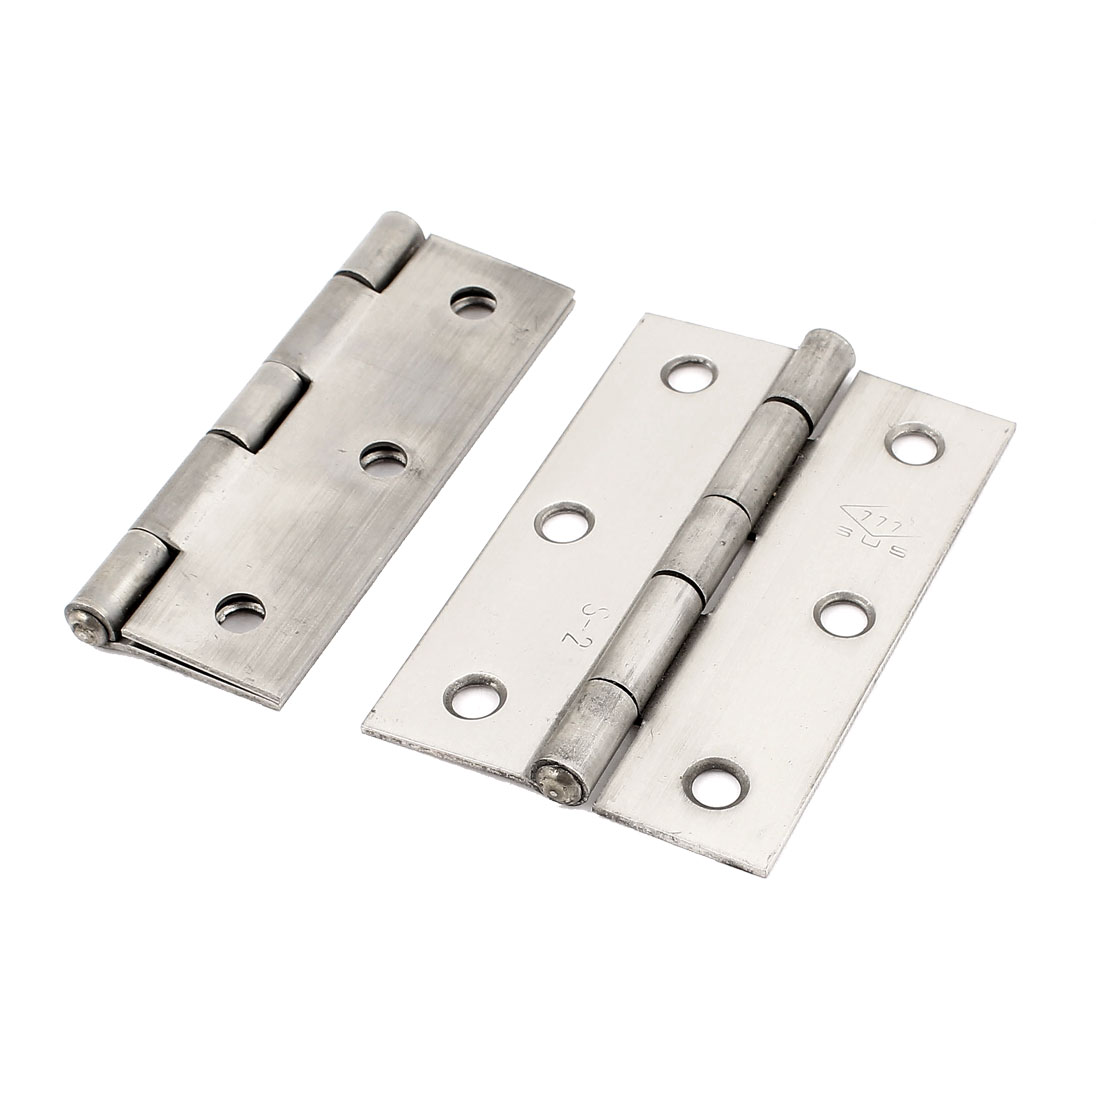 "2 Pcs 3.0"" x 2.0"" 202 Grade Stainless Steel Folding Furniture Cabinet Door Butt Hinge"